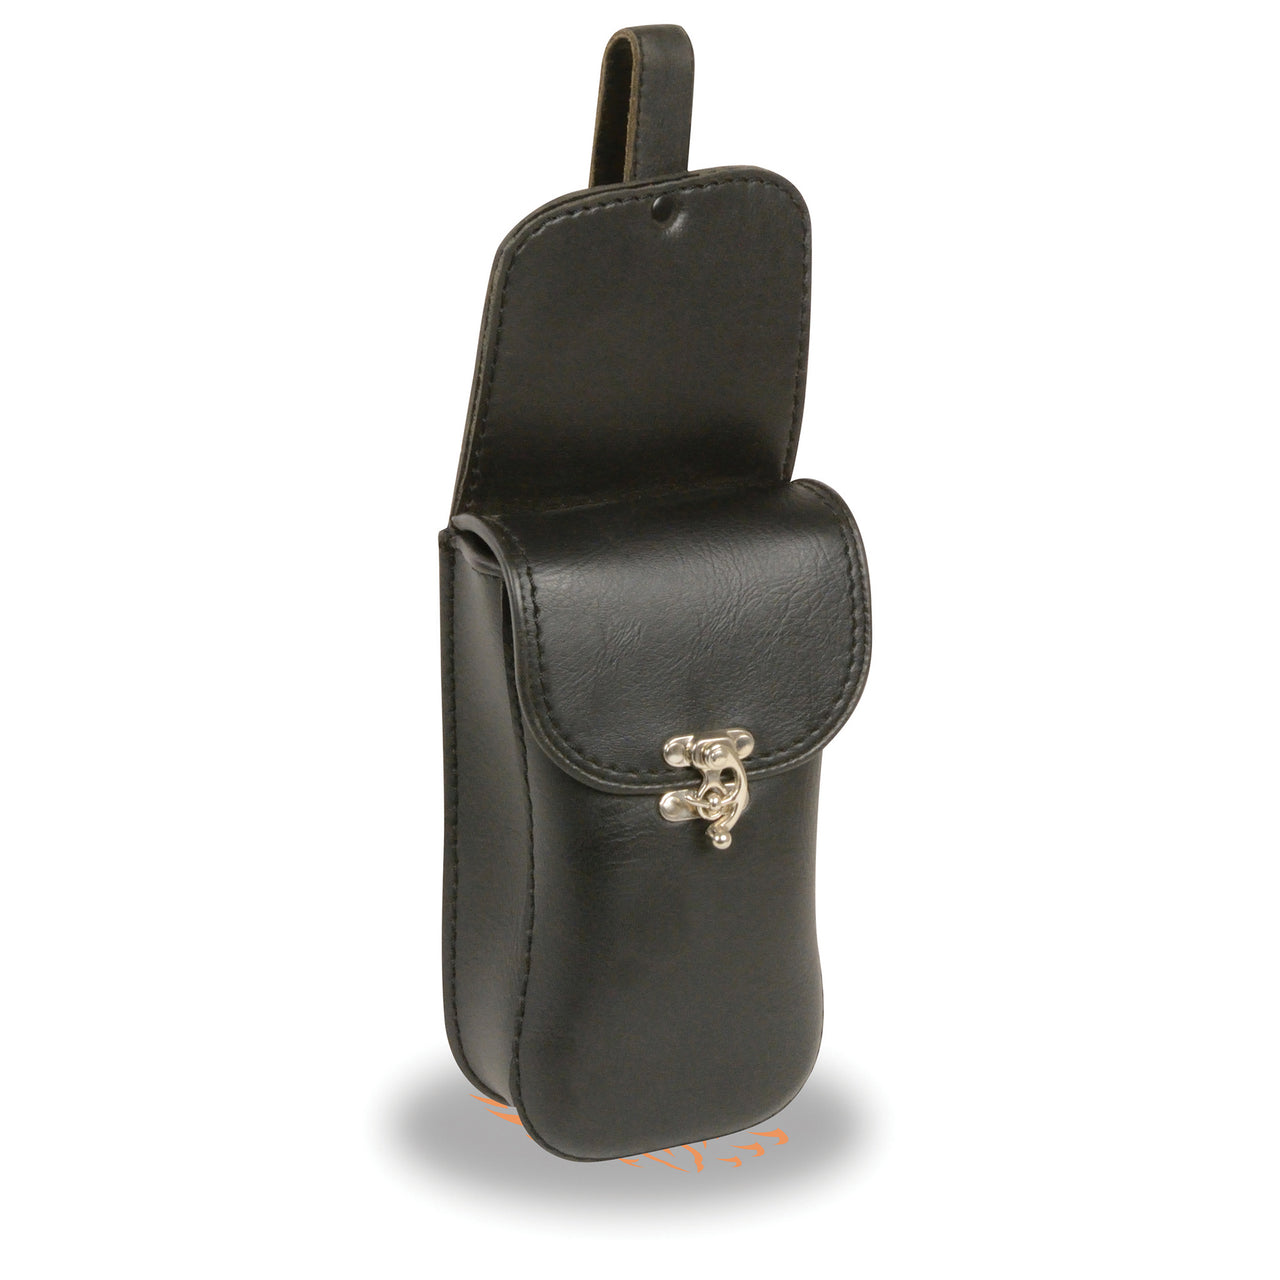 PVC Cell Phone/Cigarette Holder w/ Bag Hook & Clasp Closure (12X4.5) - HighwayLeather